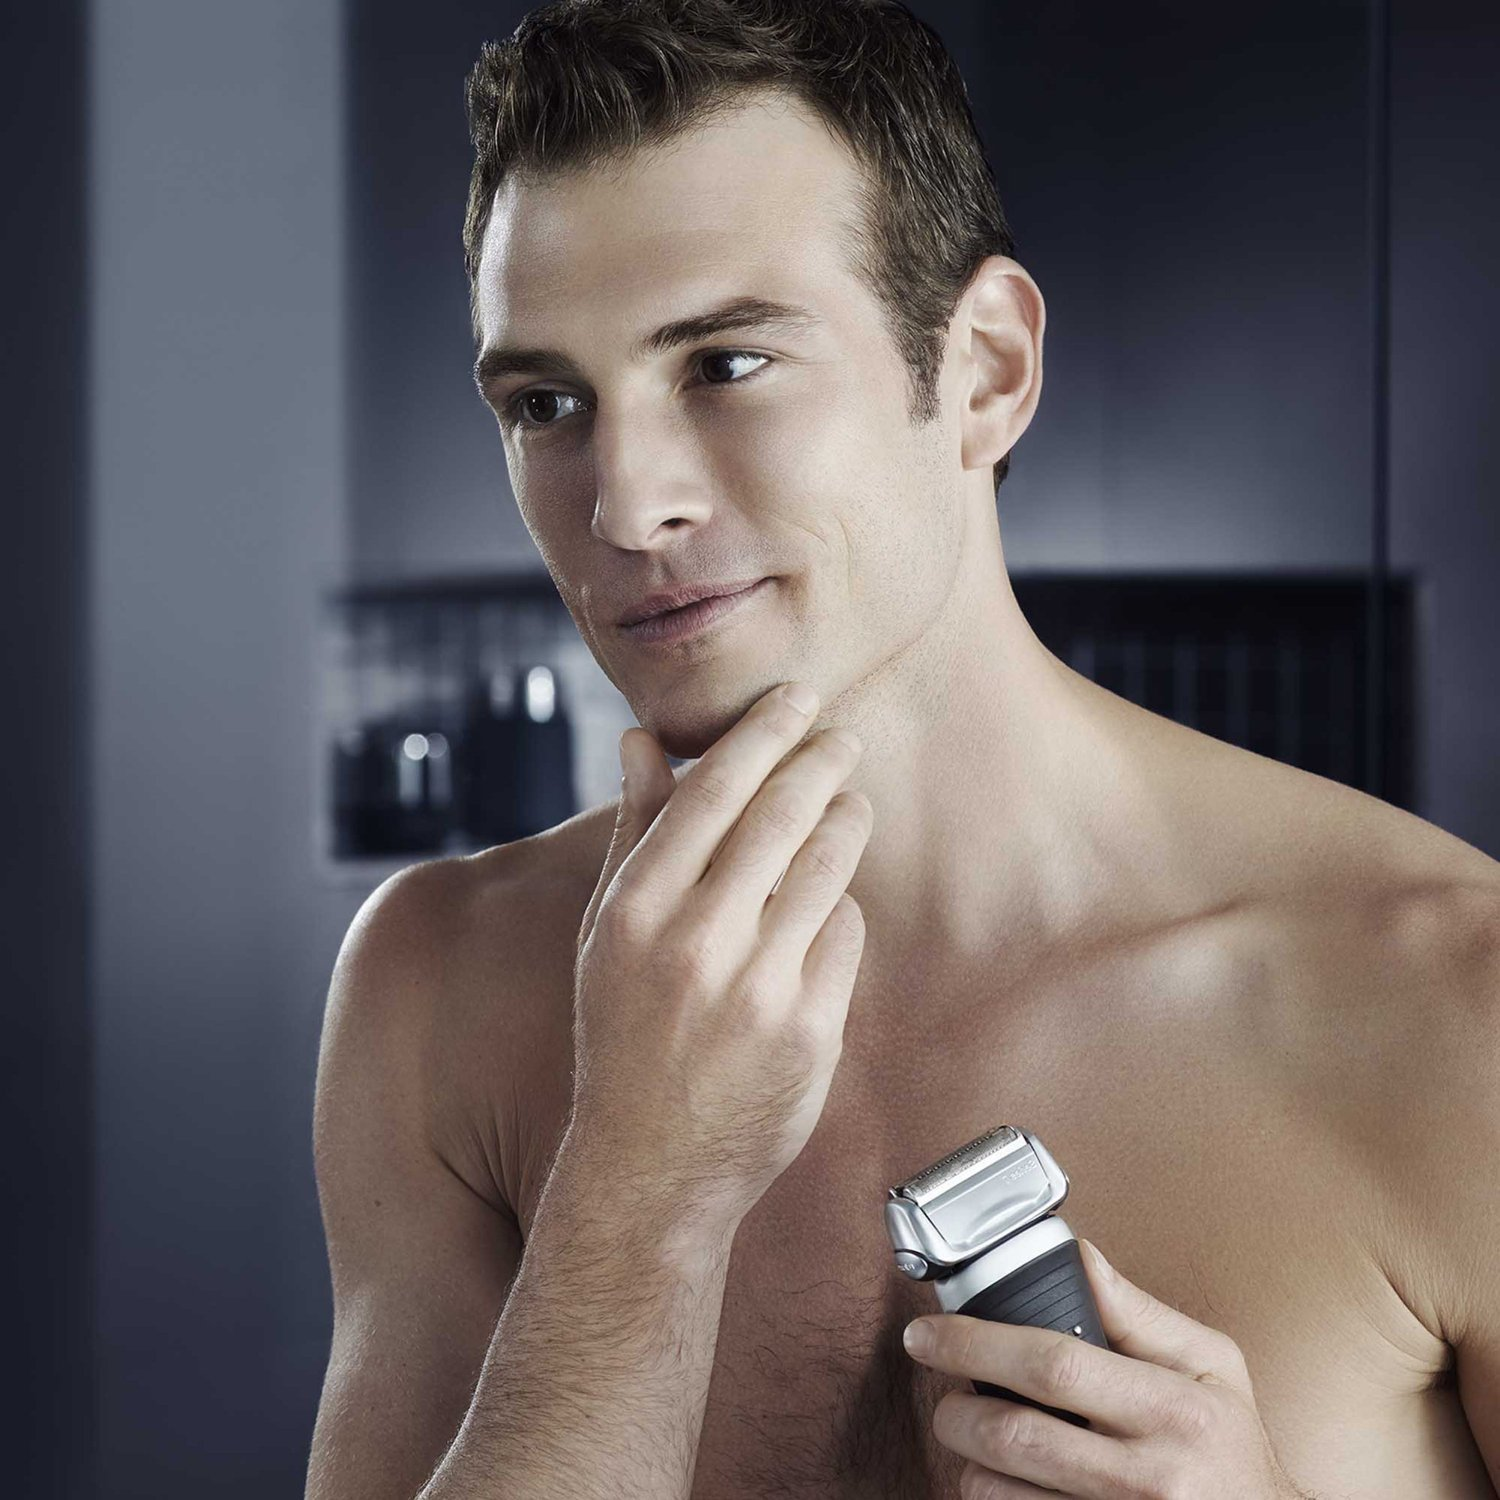 How to Properly Shave for a Smooth Finish